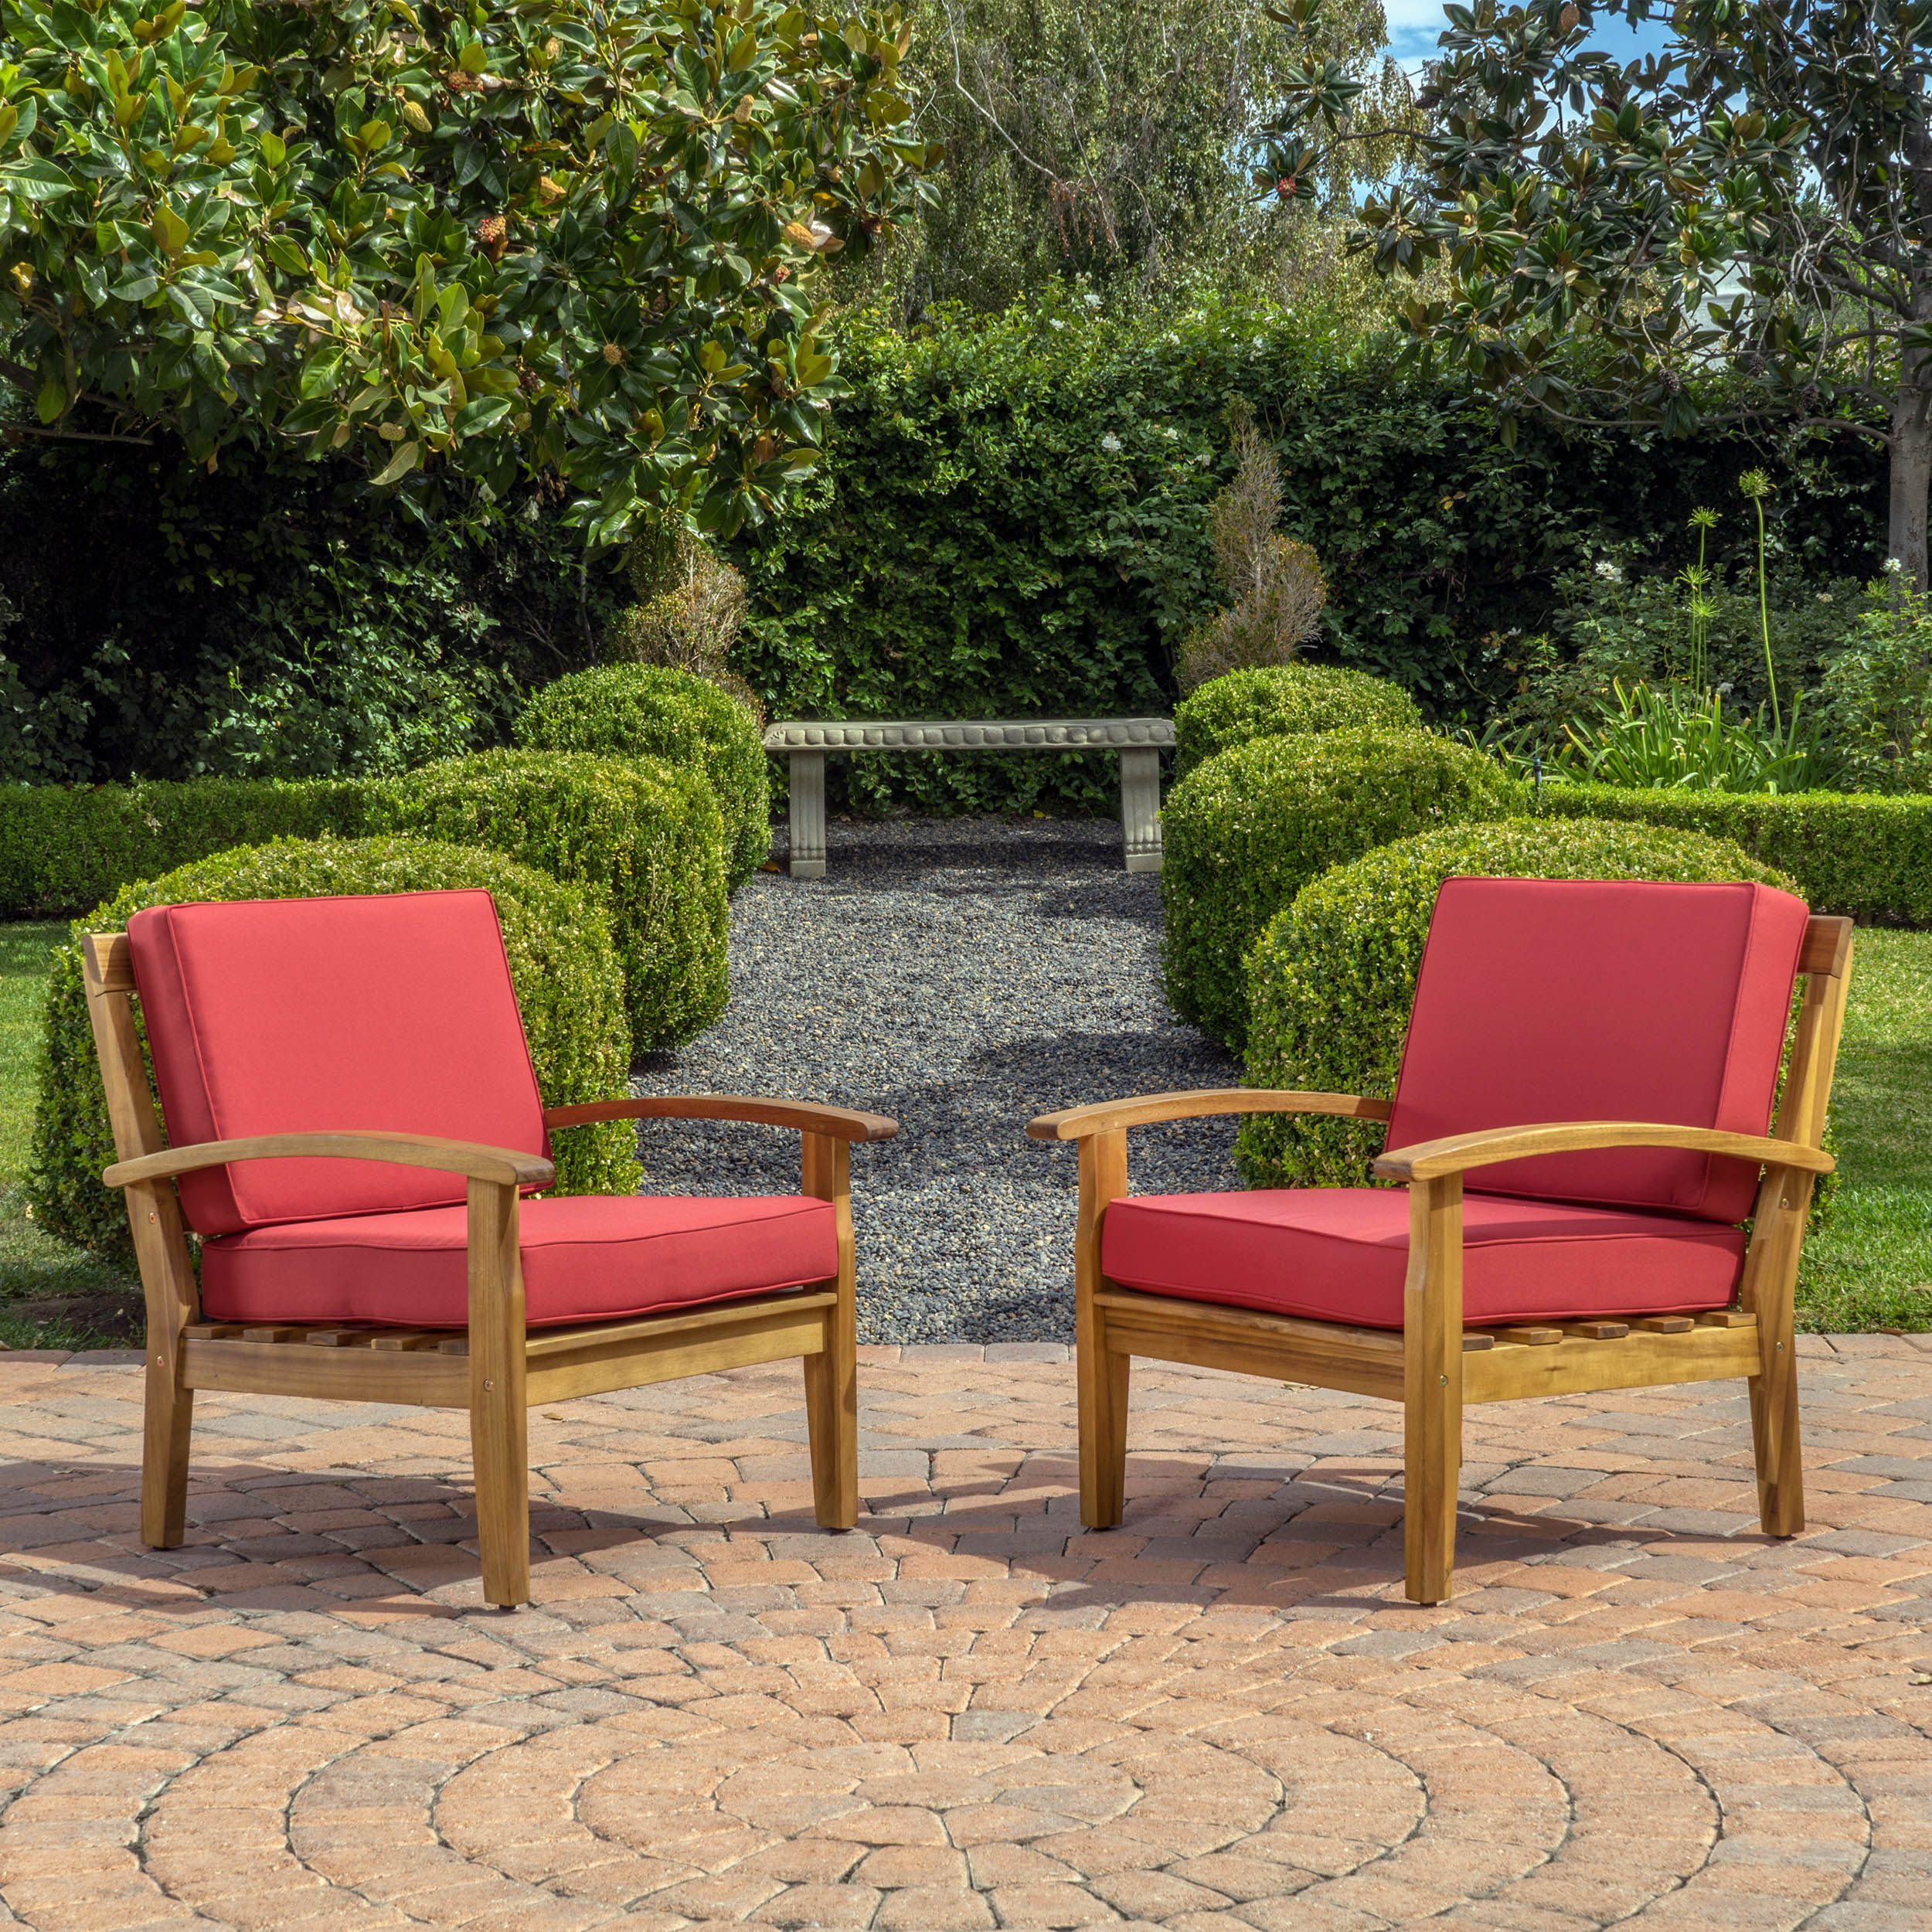 Aletta Outdoor Wooden Club Chairs with Cushions , Set of 2, Teak Finish, Red by Noble House